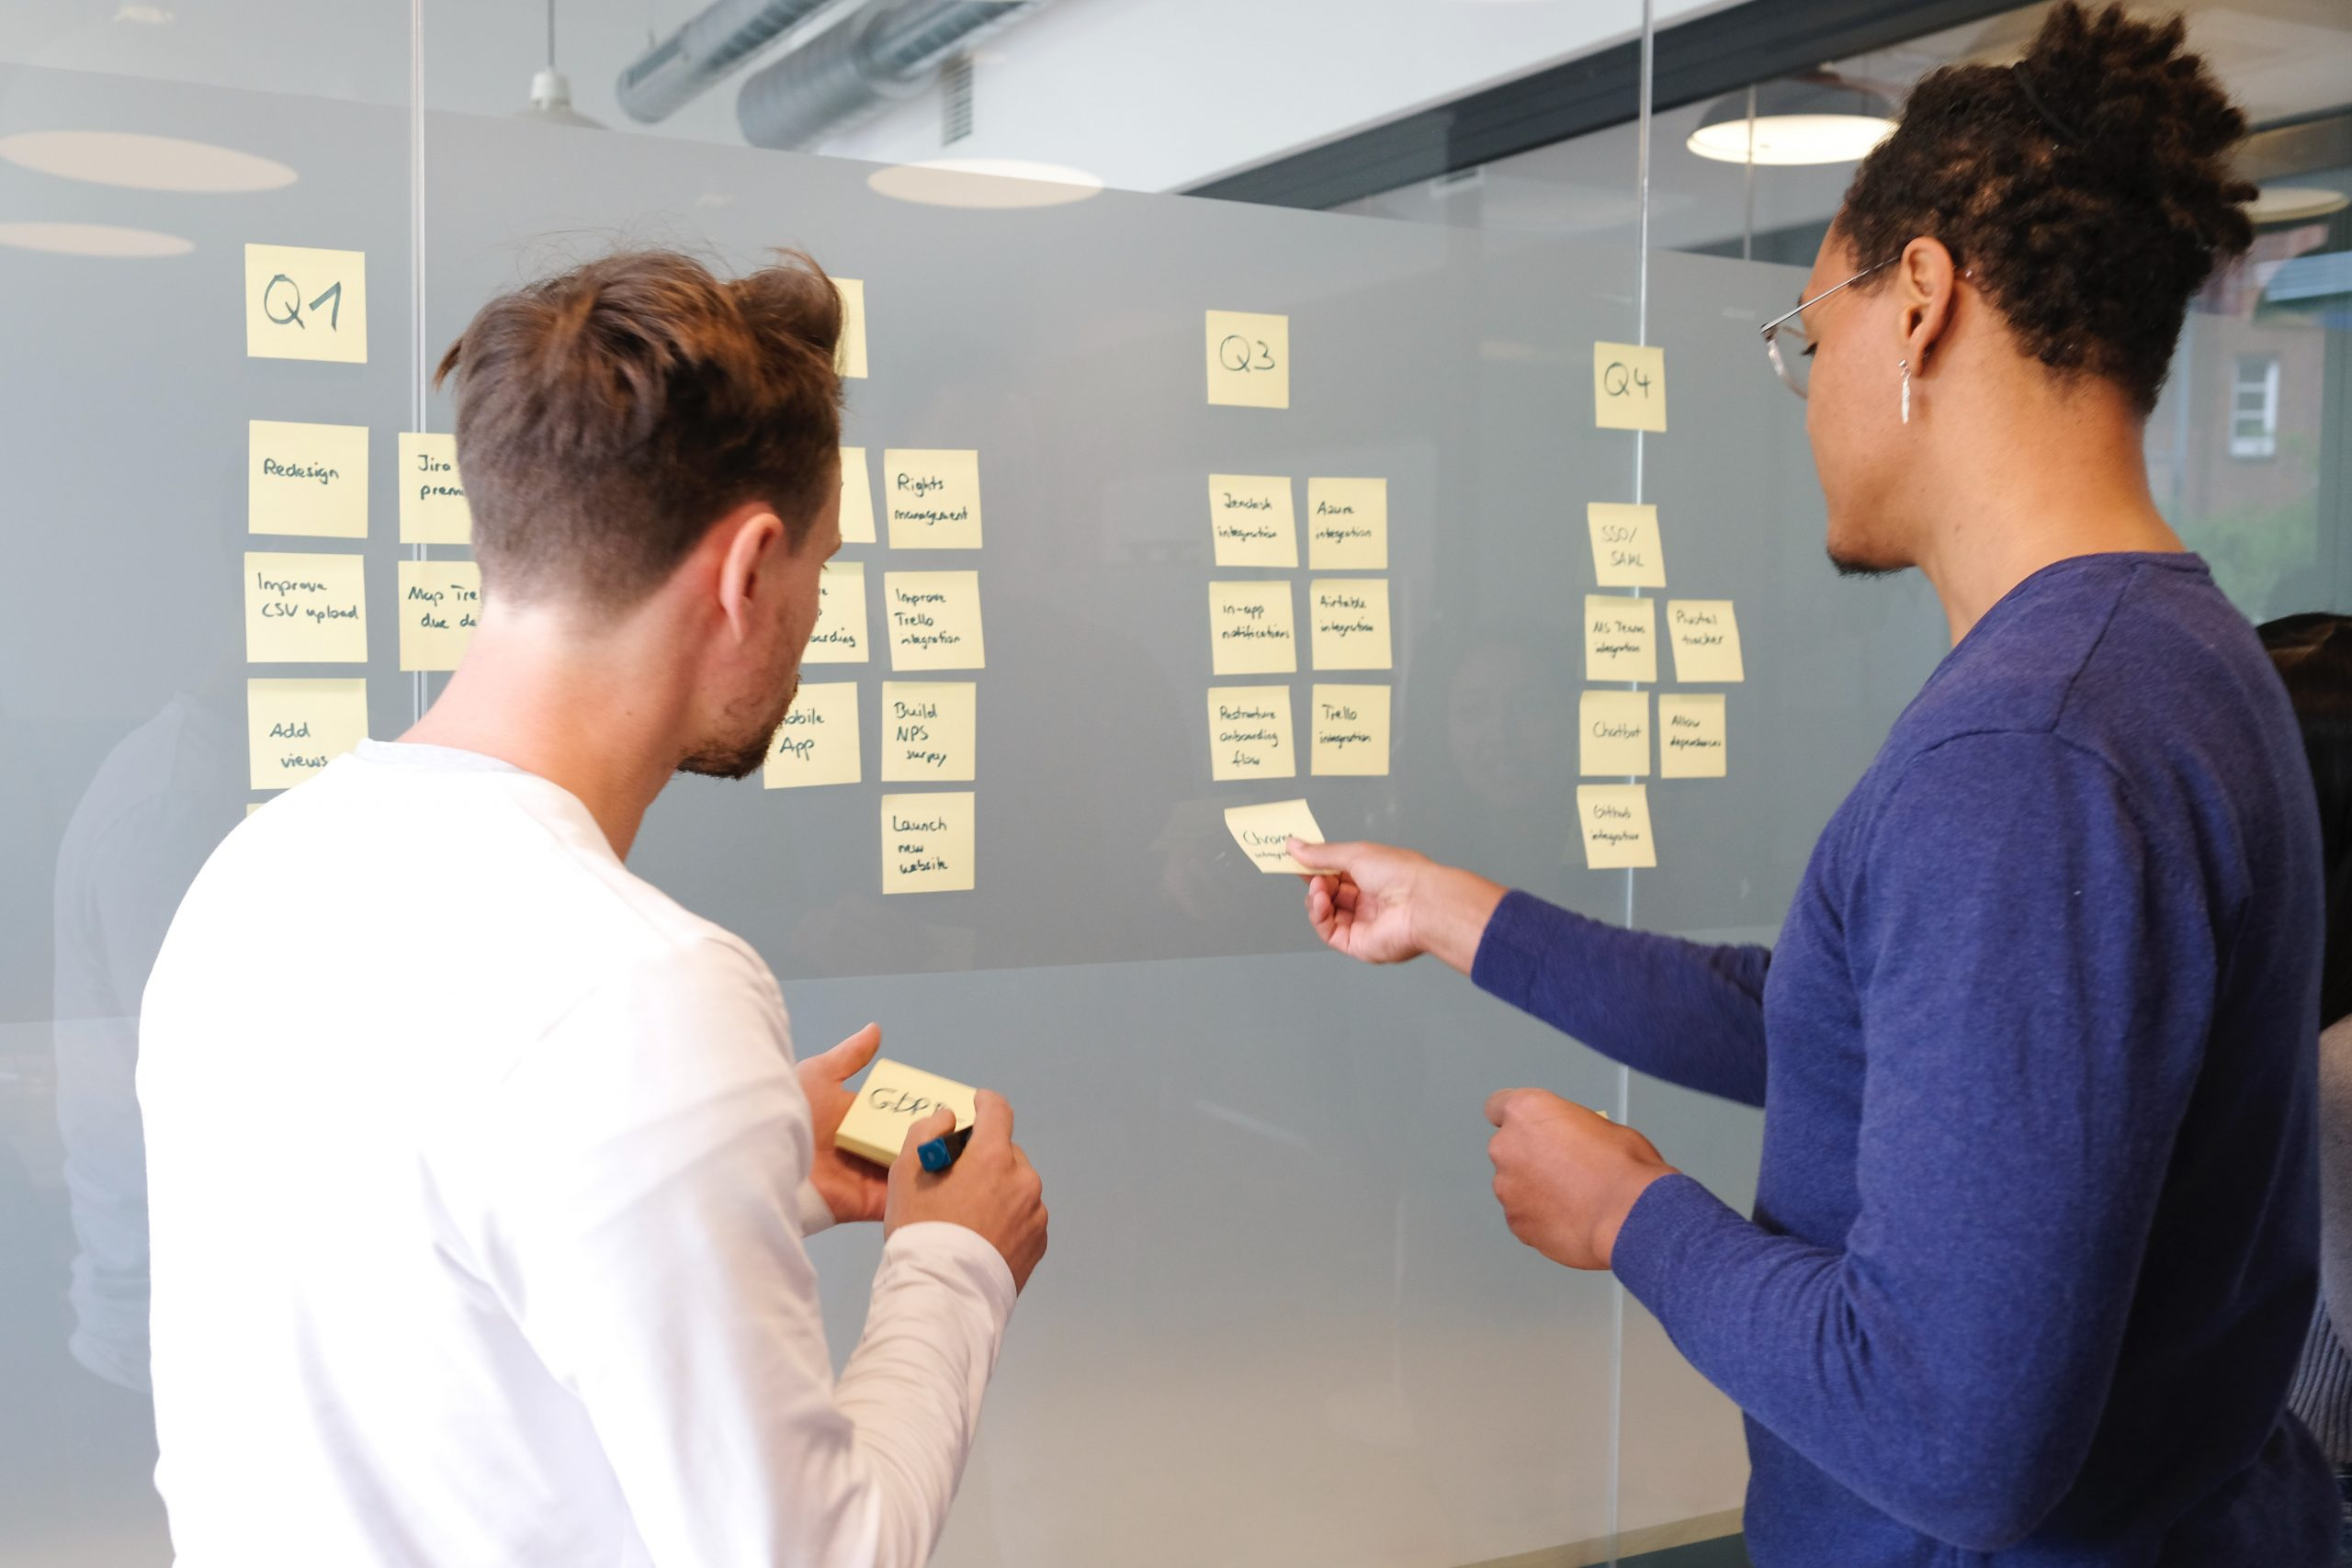 man and woman organising research information in kanban style using post it notes on a grey board